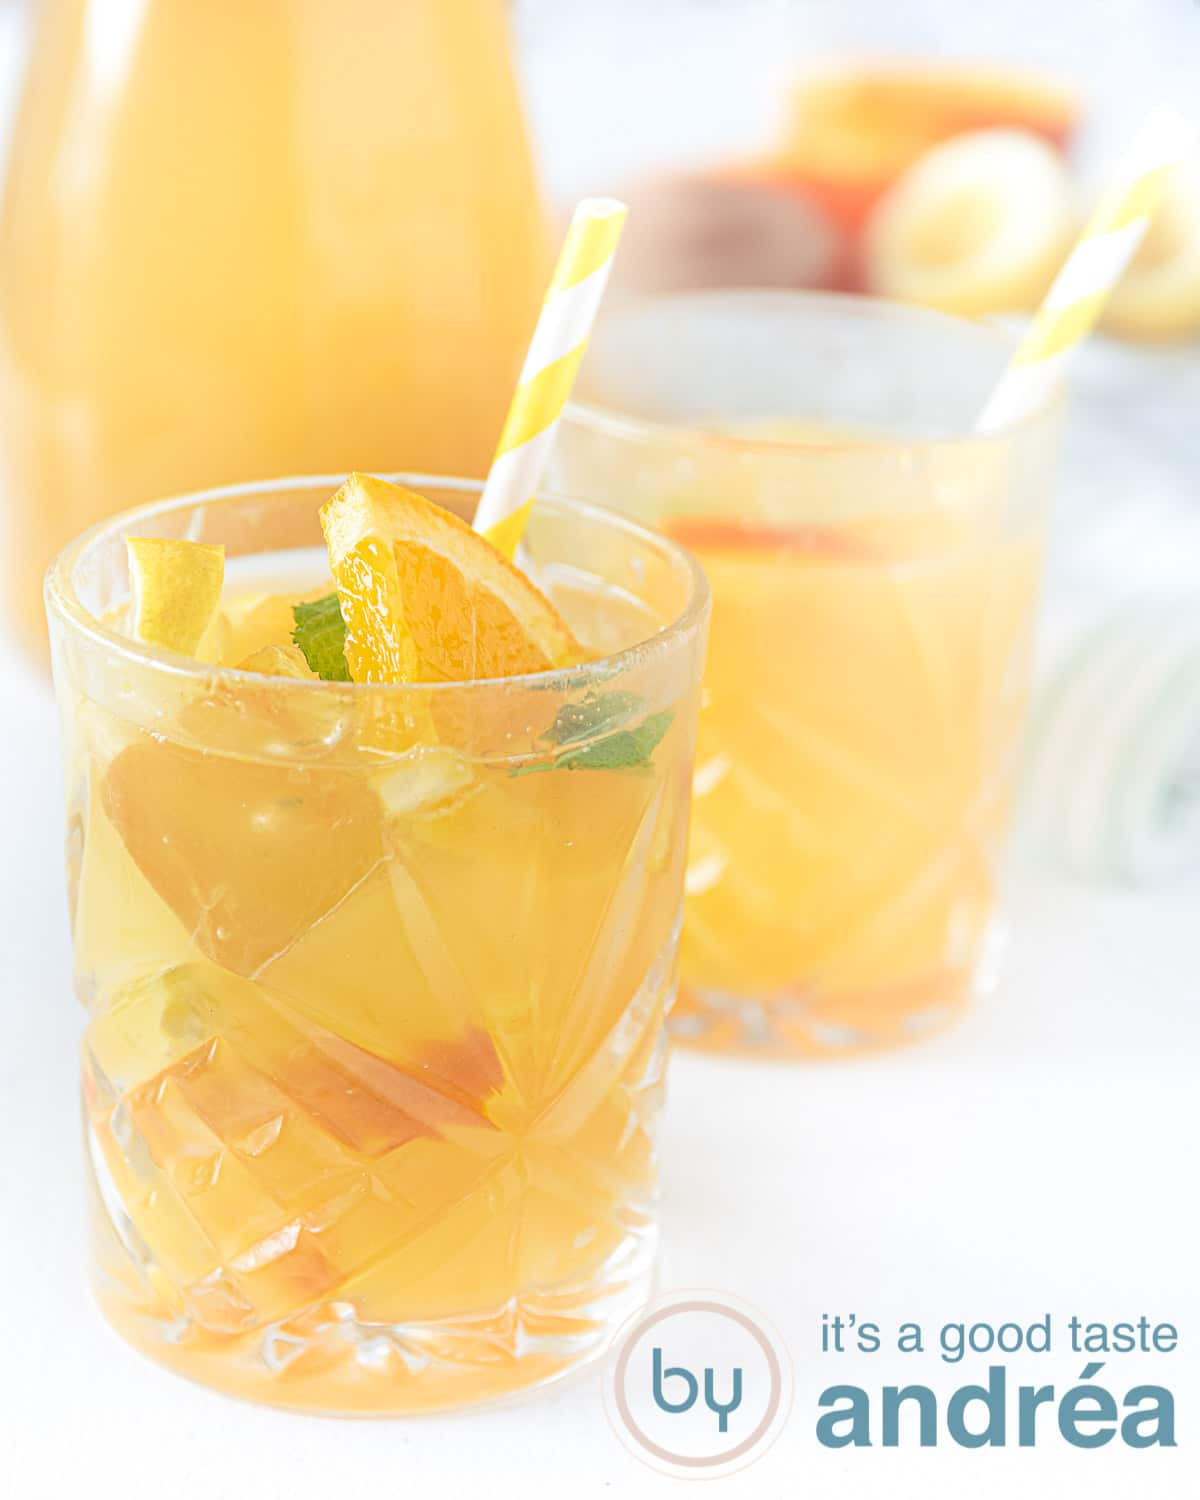 Two glasses filled with orange iced tea. A jar in the background and some oranges.